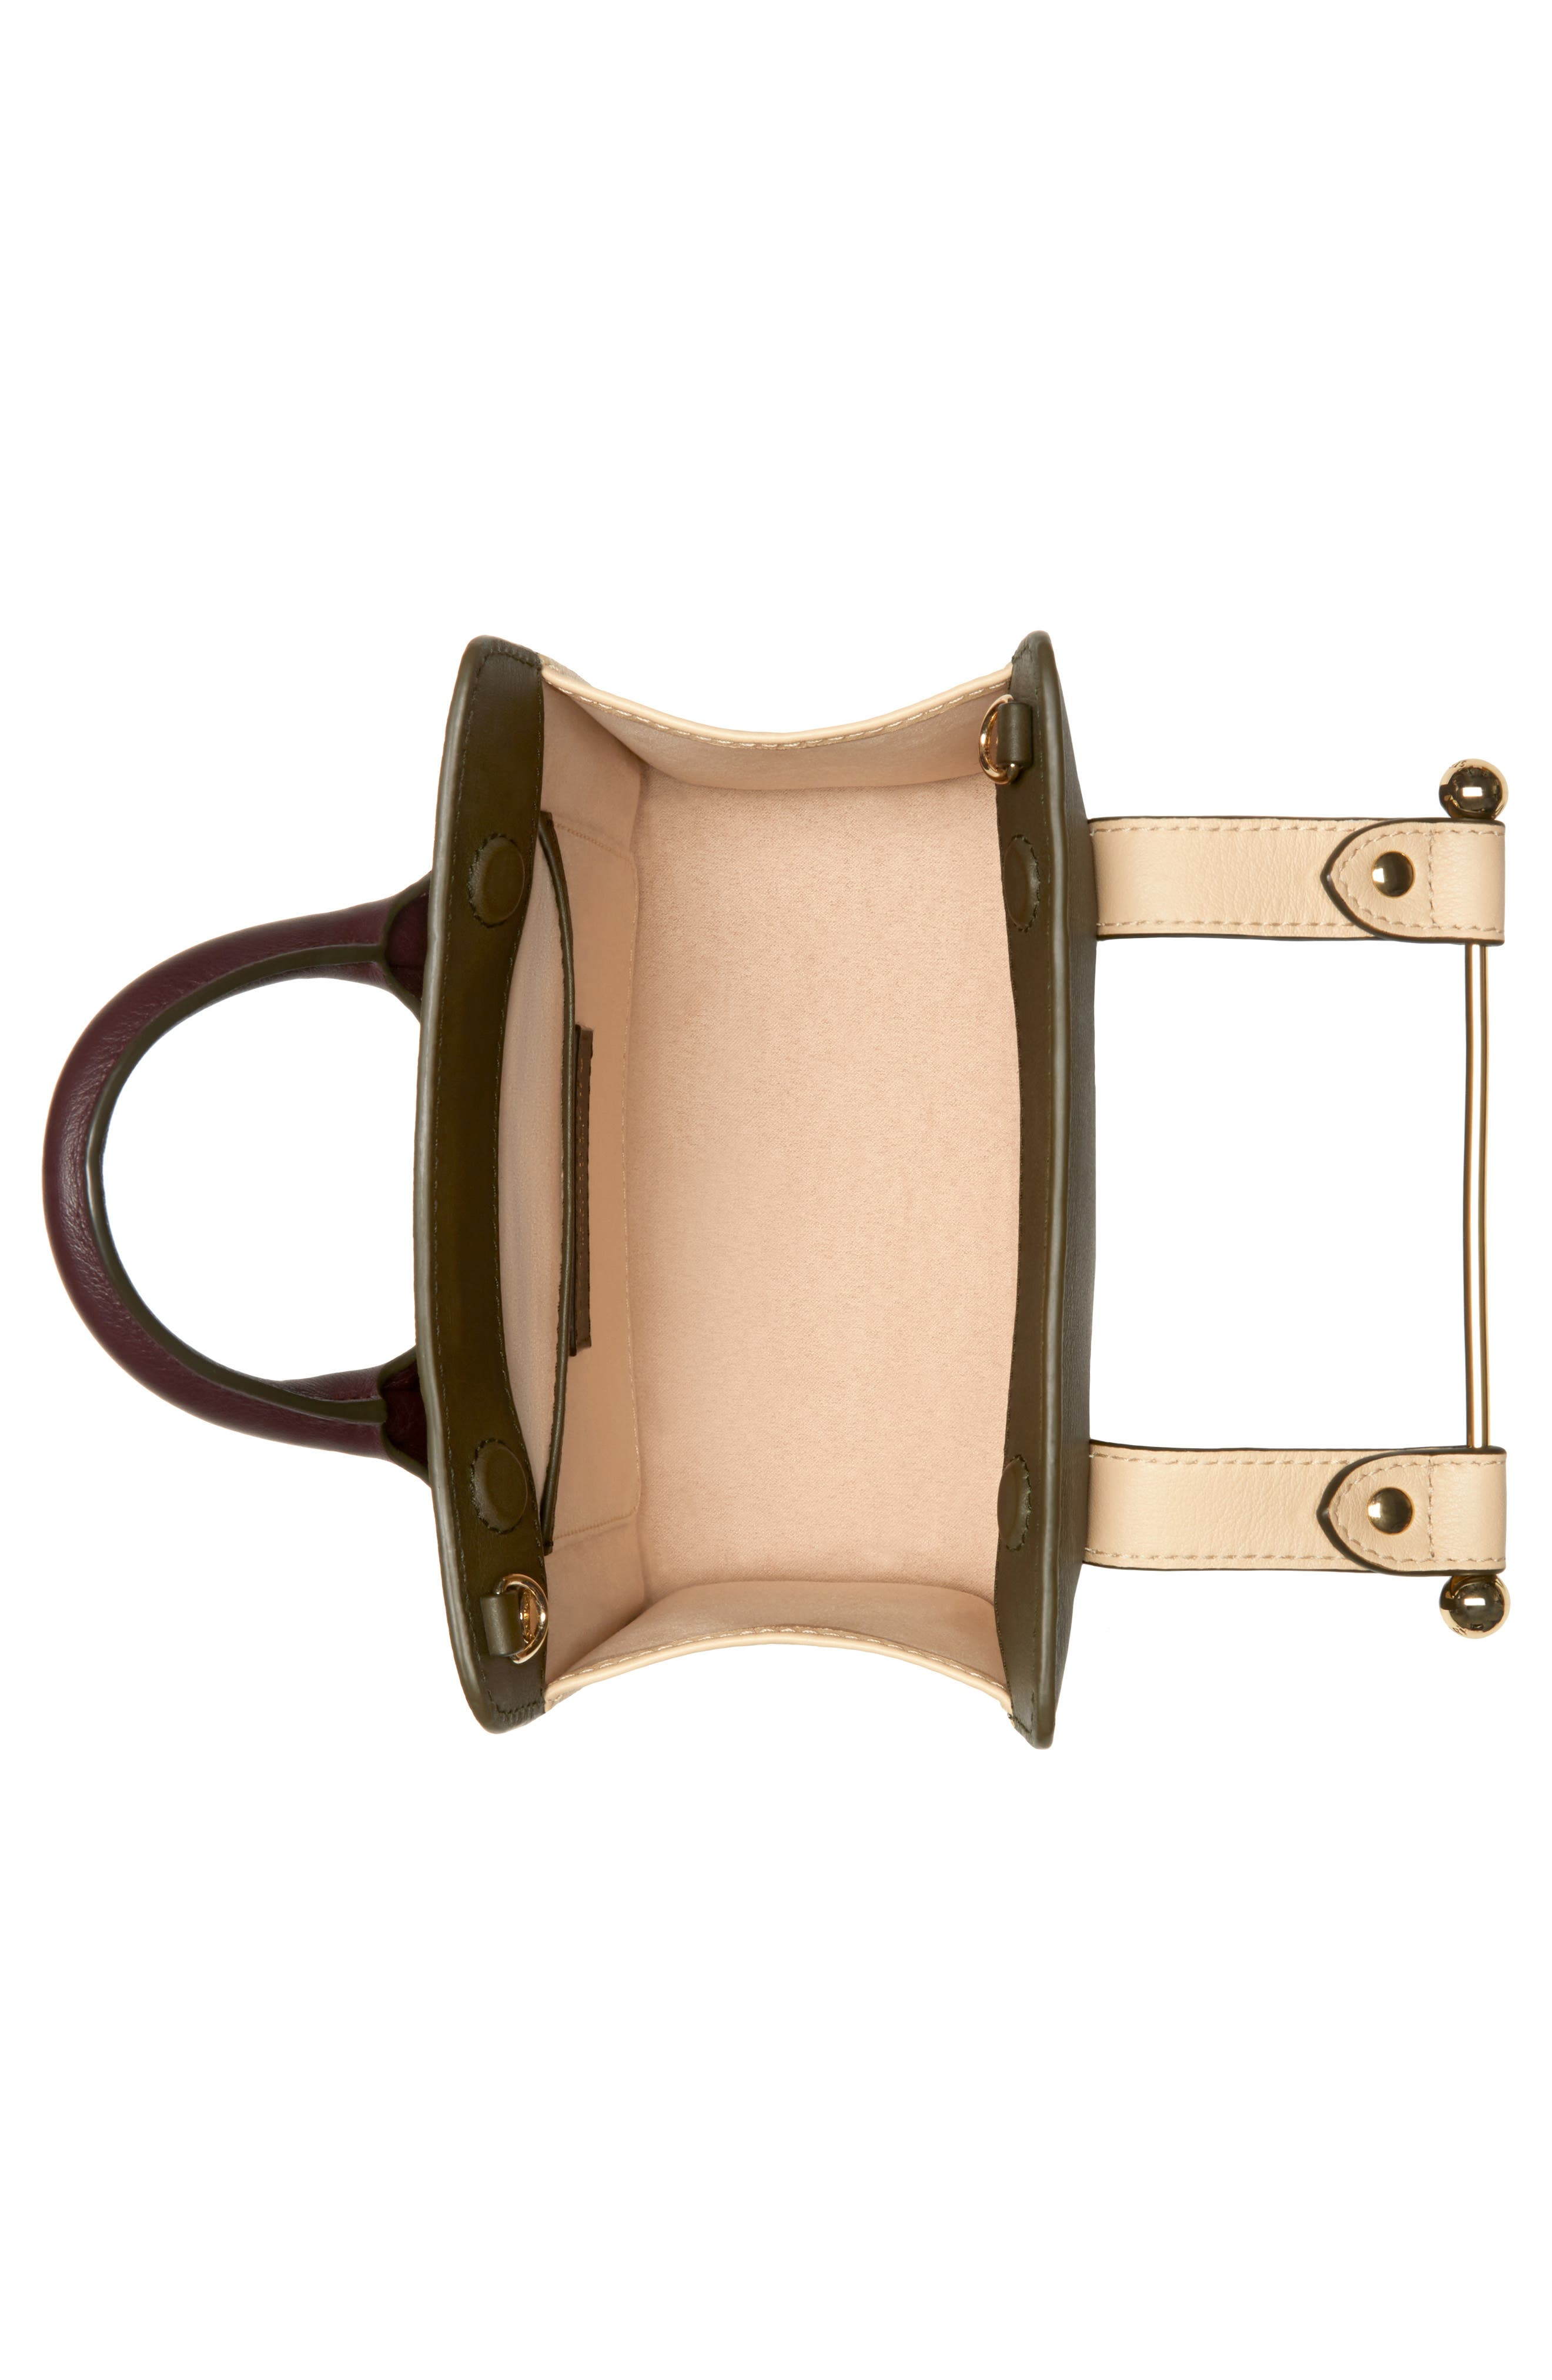 STRATHBERRY, Nano Tricolor Leather Satchel, Alternate thumbnail 3, color, FOREST/ SAND/ BURGUNDY